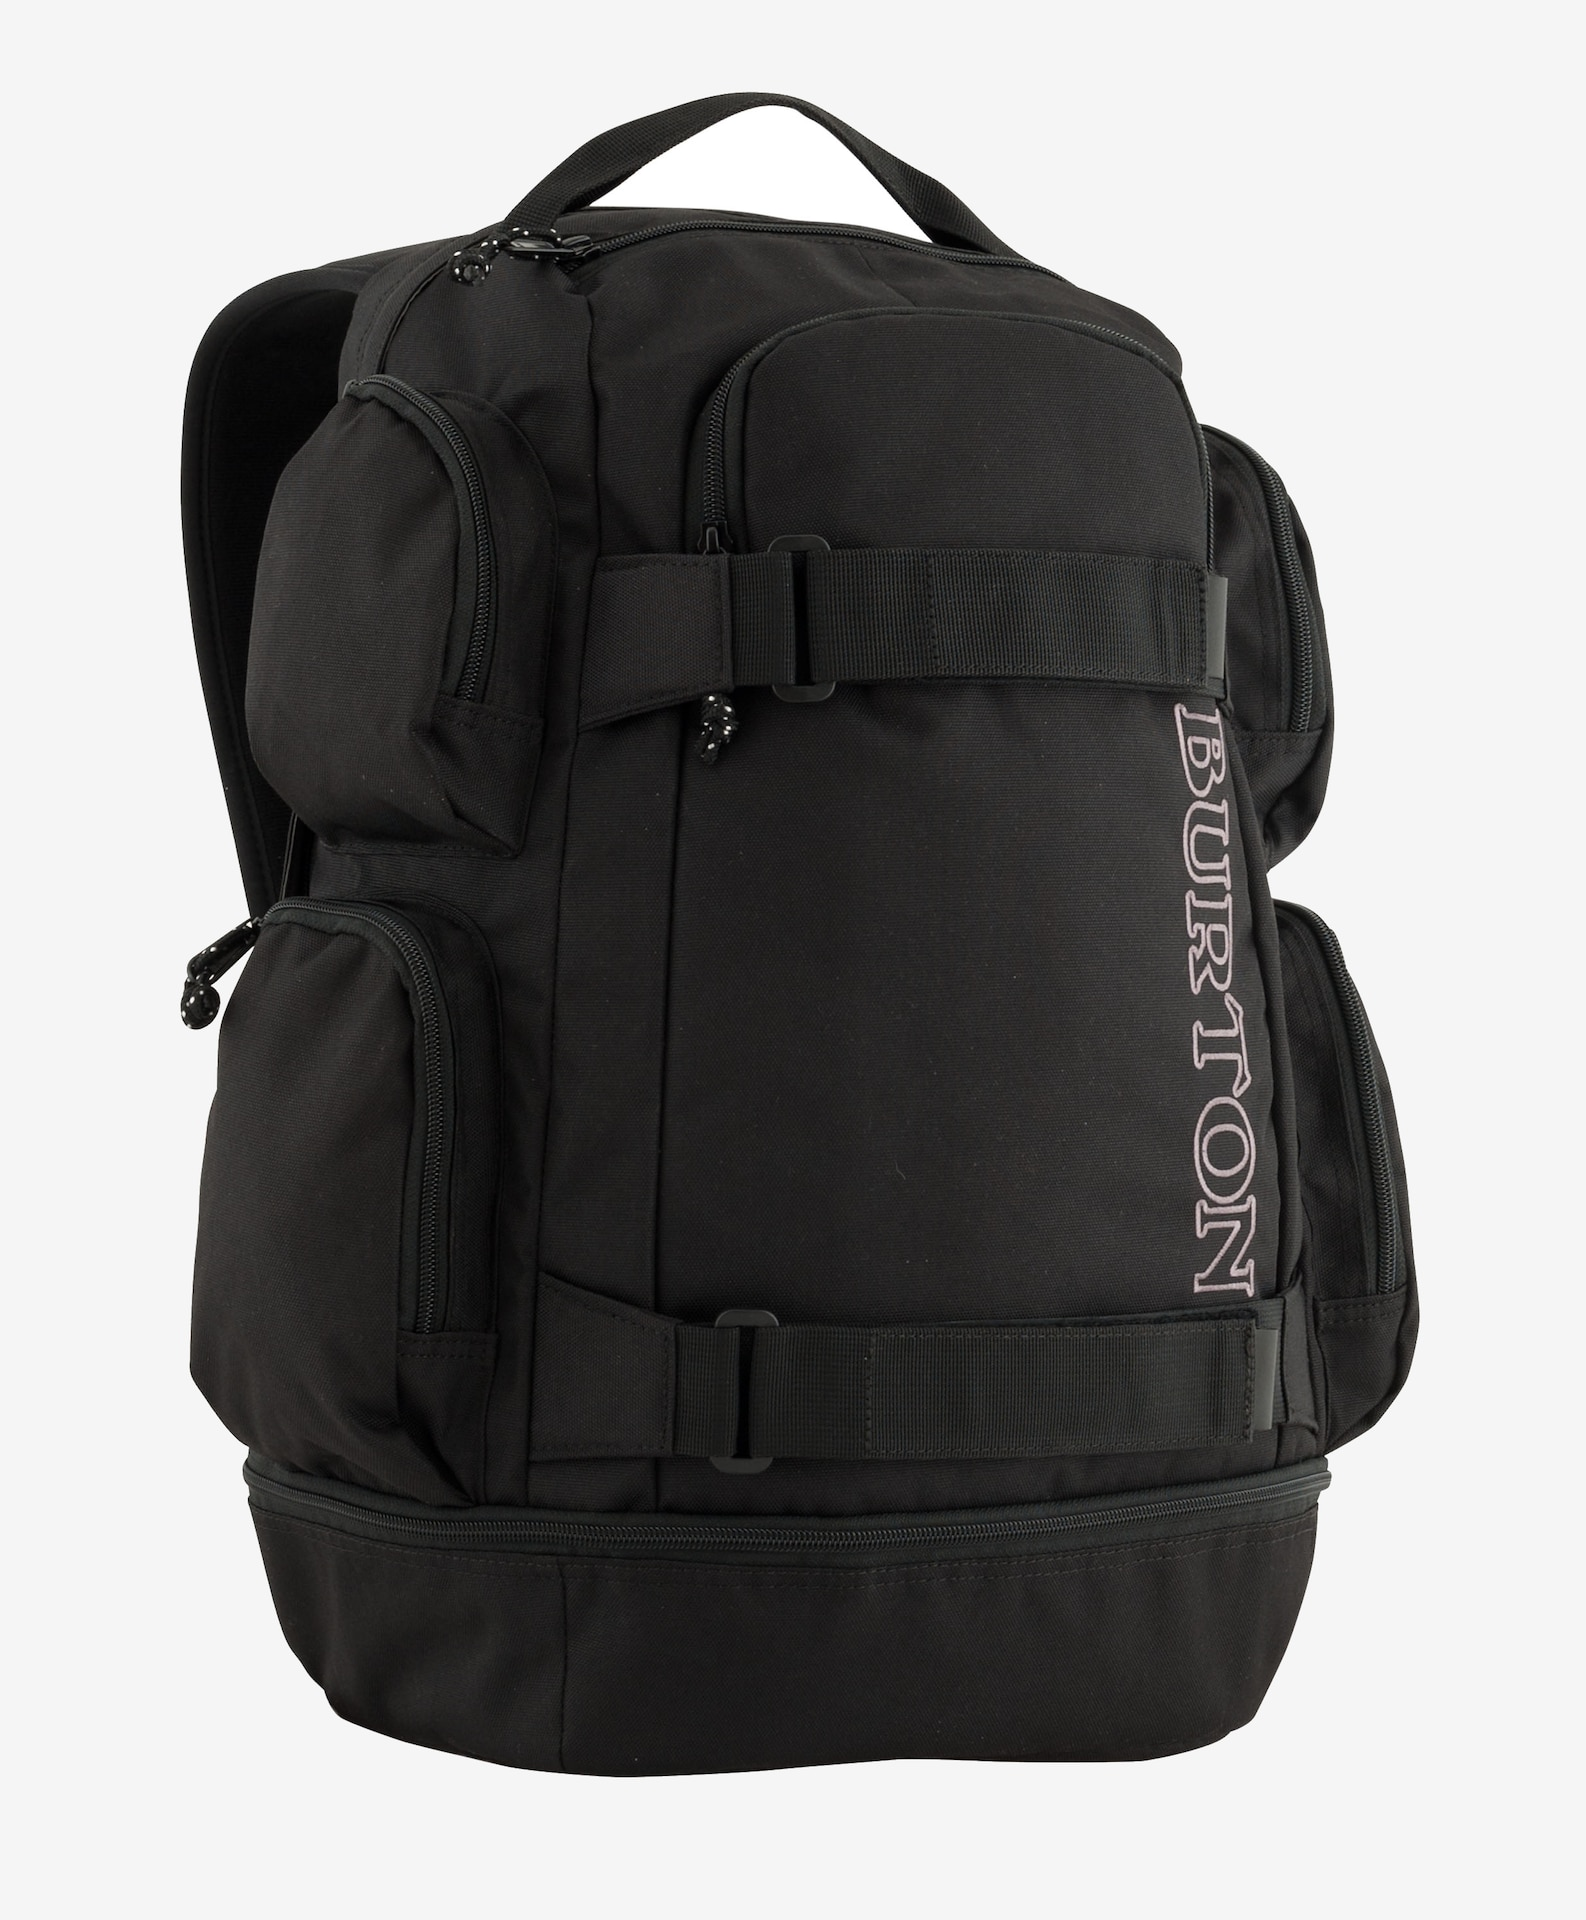 Burton Distortion Backpack shown in True Black